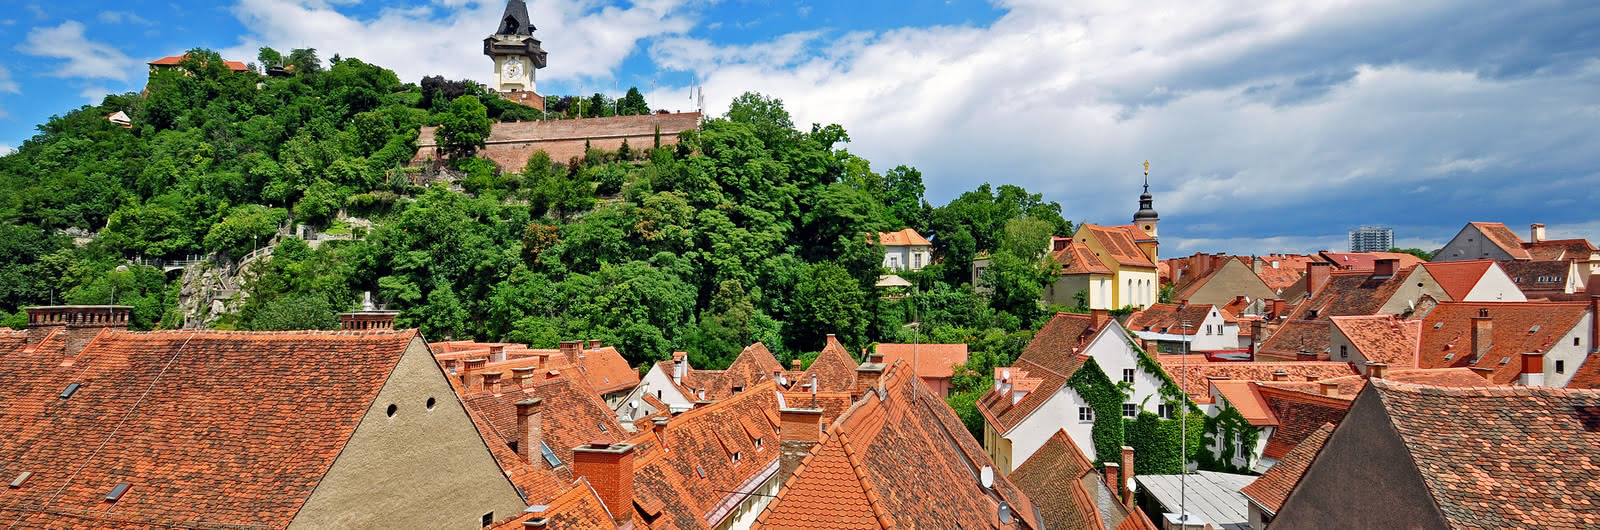 graz city header